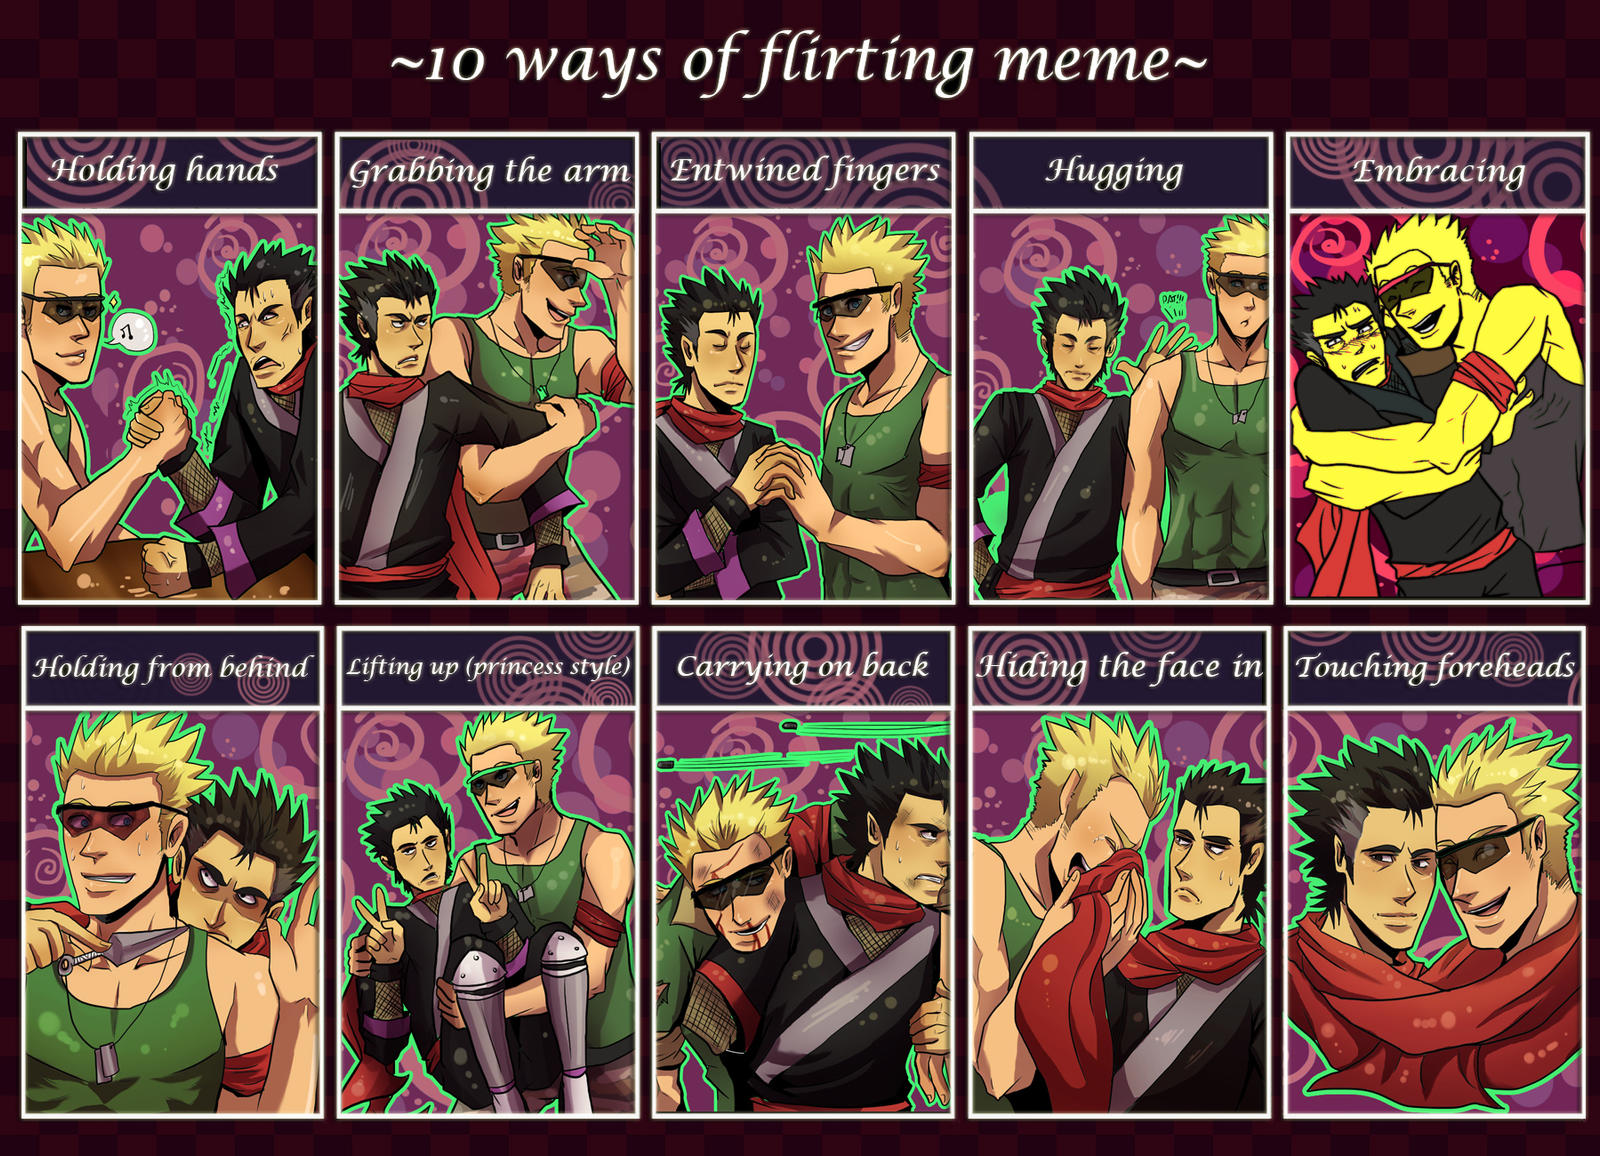 flirting games anime characters images pictures download